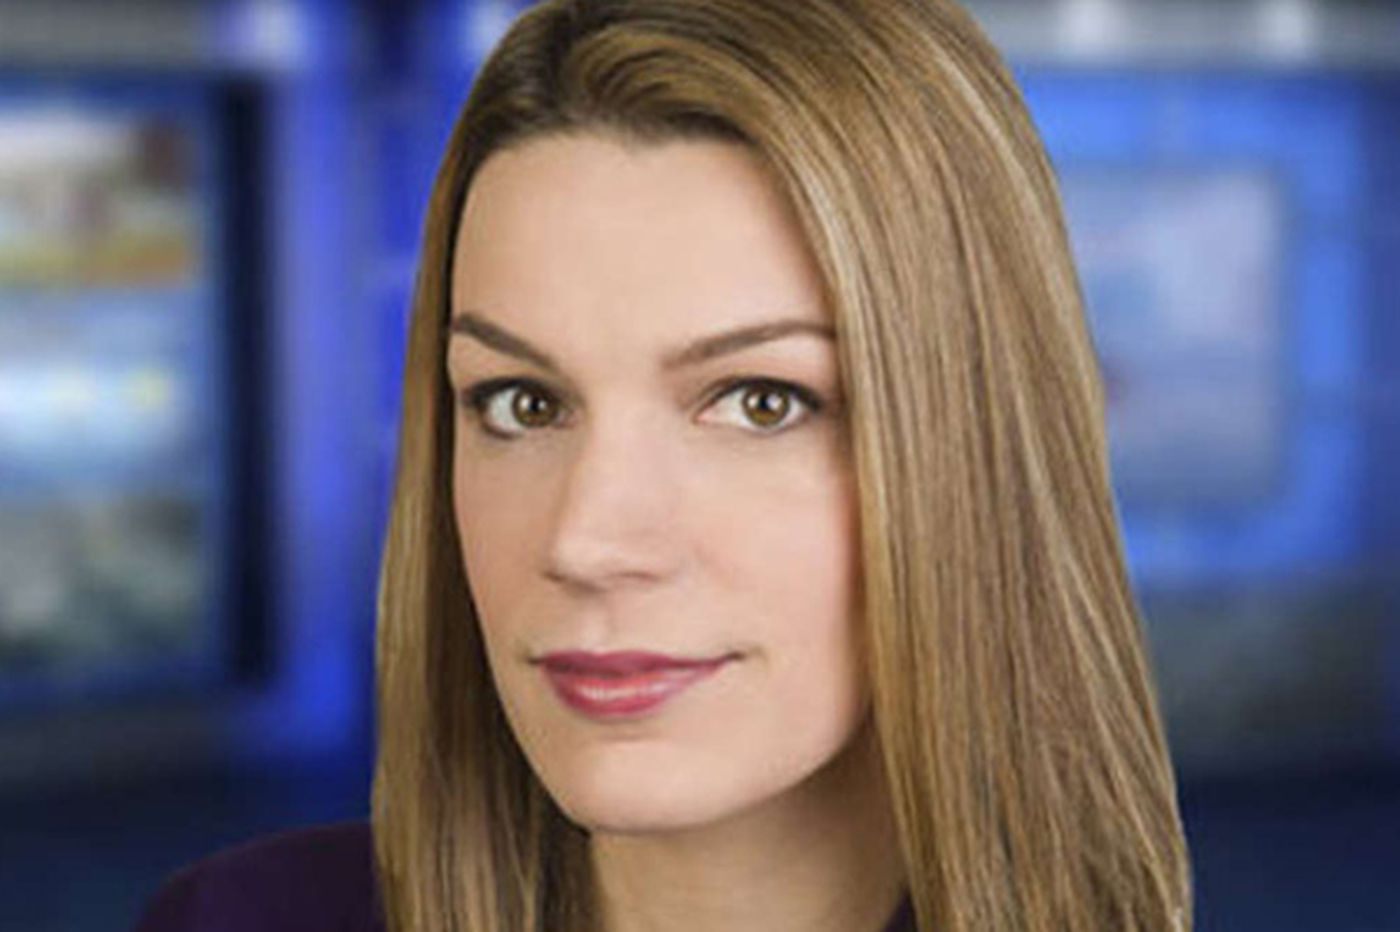 NBC10's Deanna Durante welcomes second child